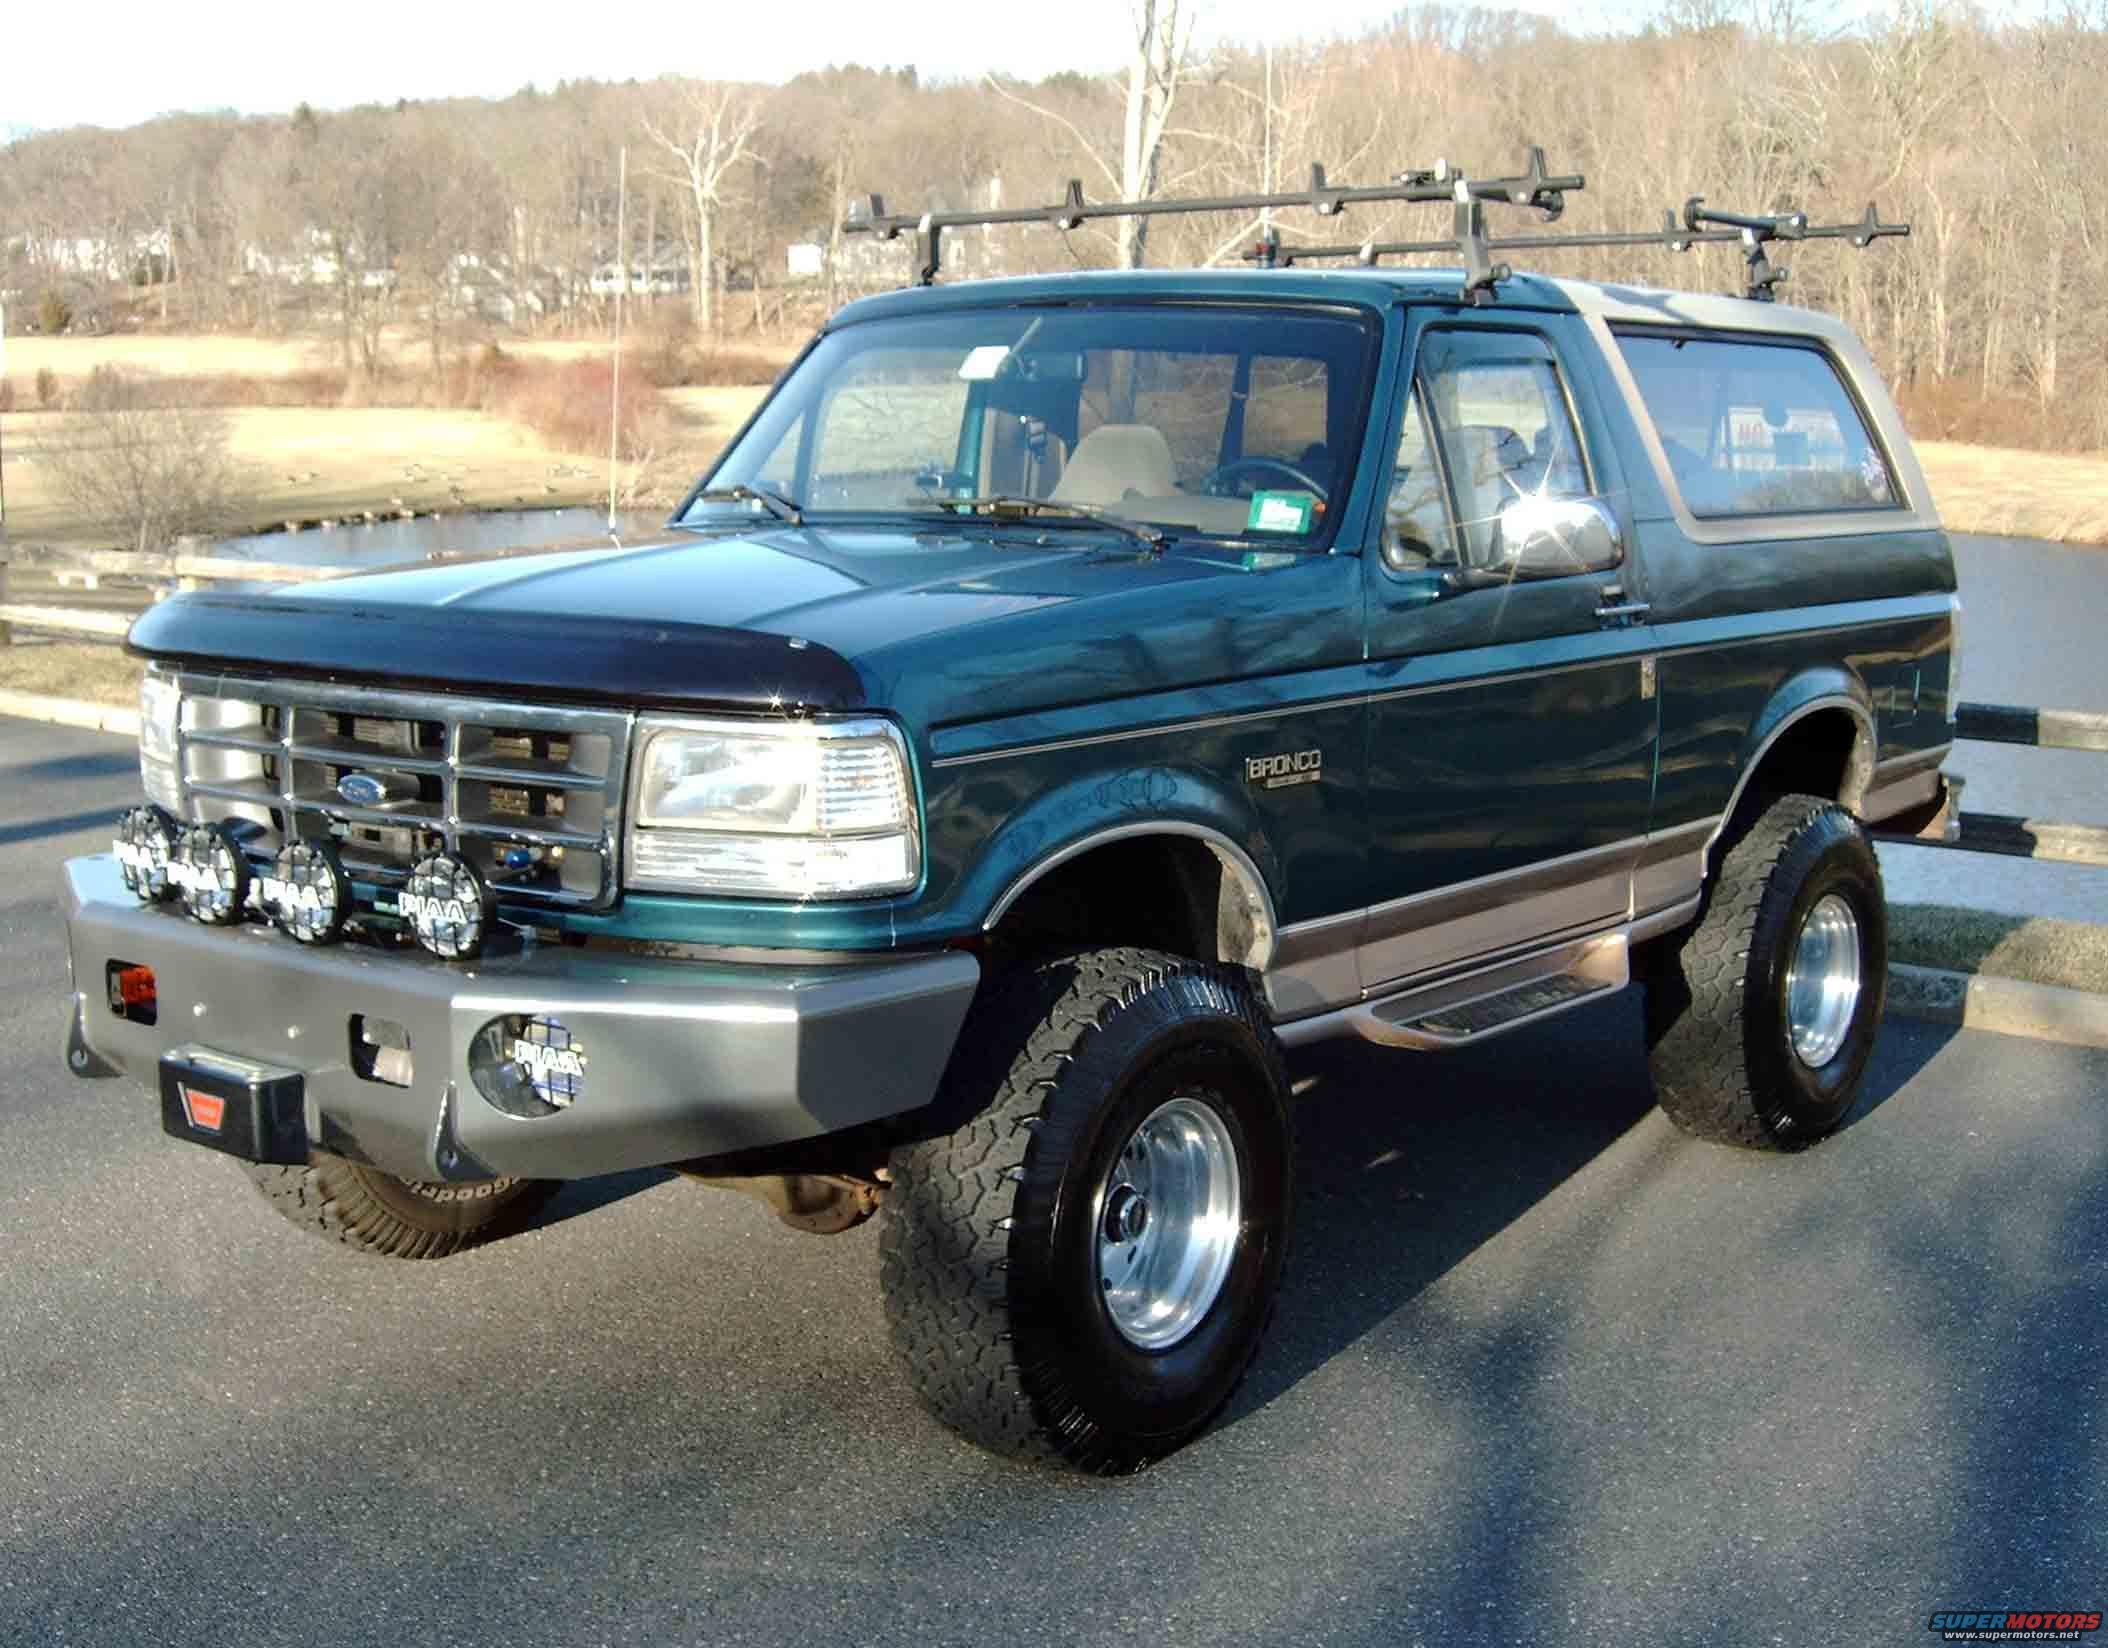 New Ford Bronco >> 1996 Ford Bronco New Bumper picture | SuperMotors.net